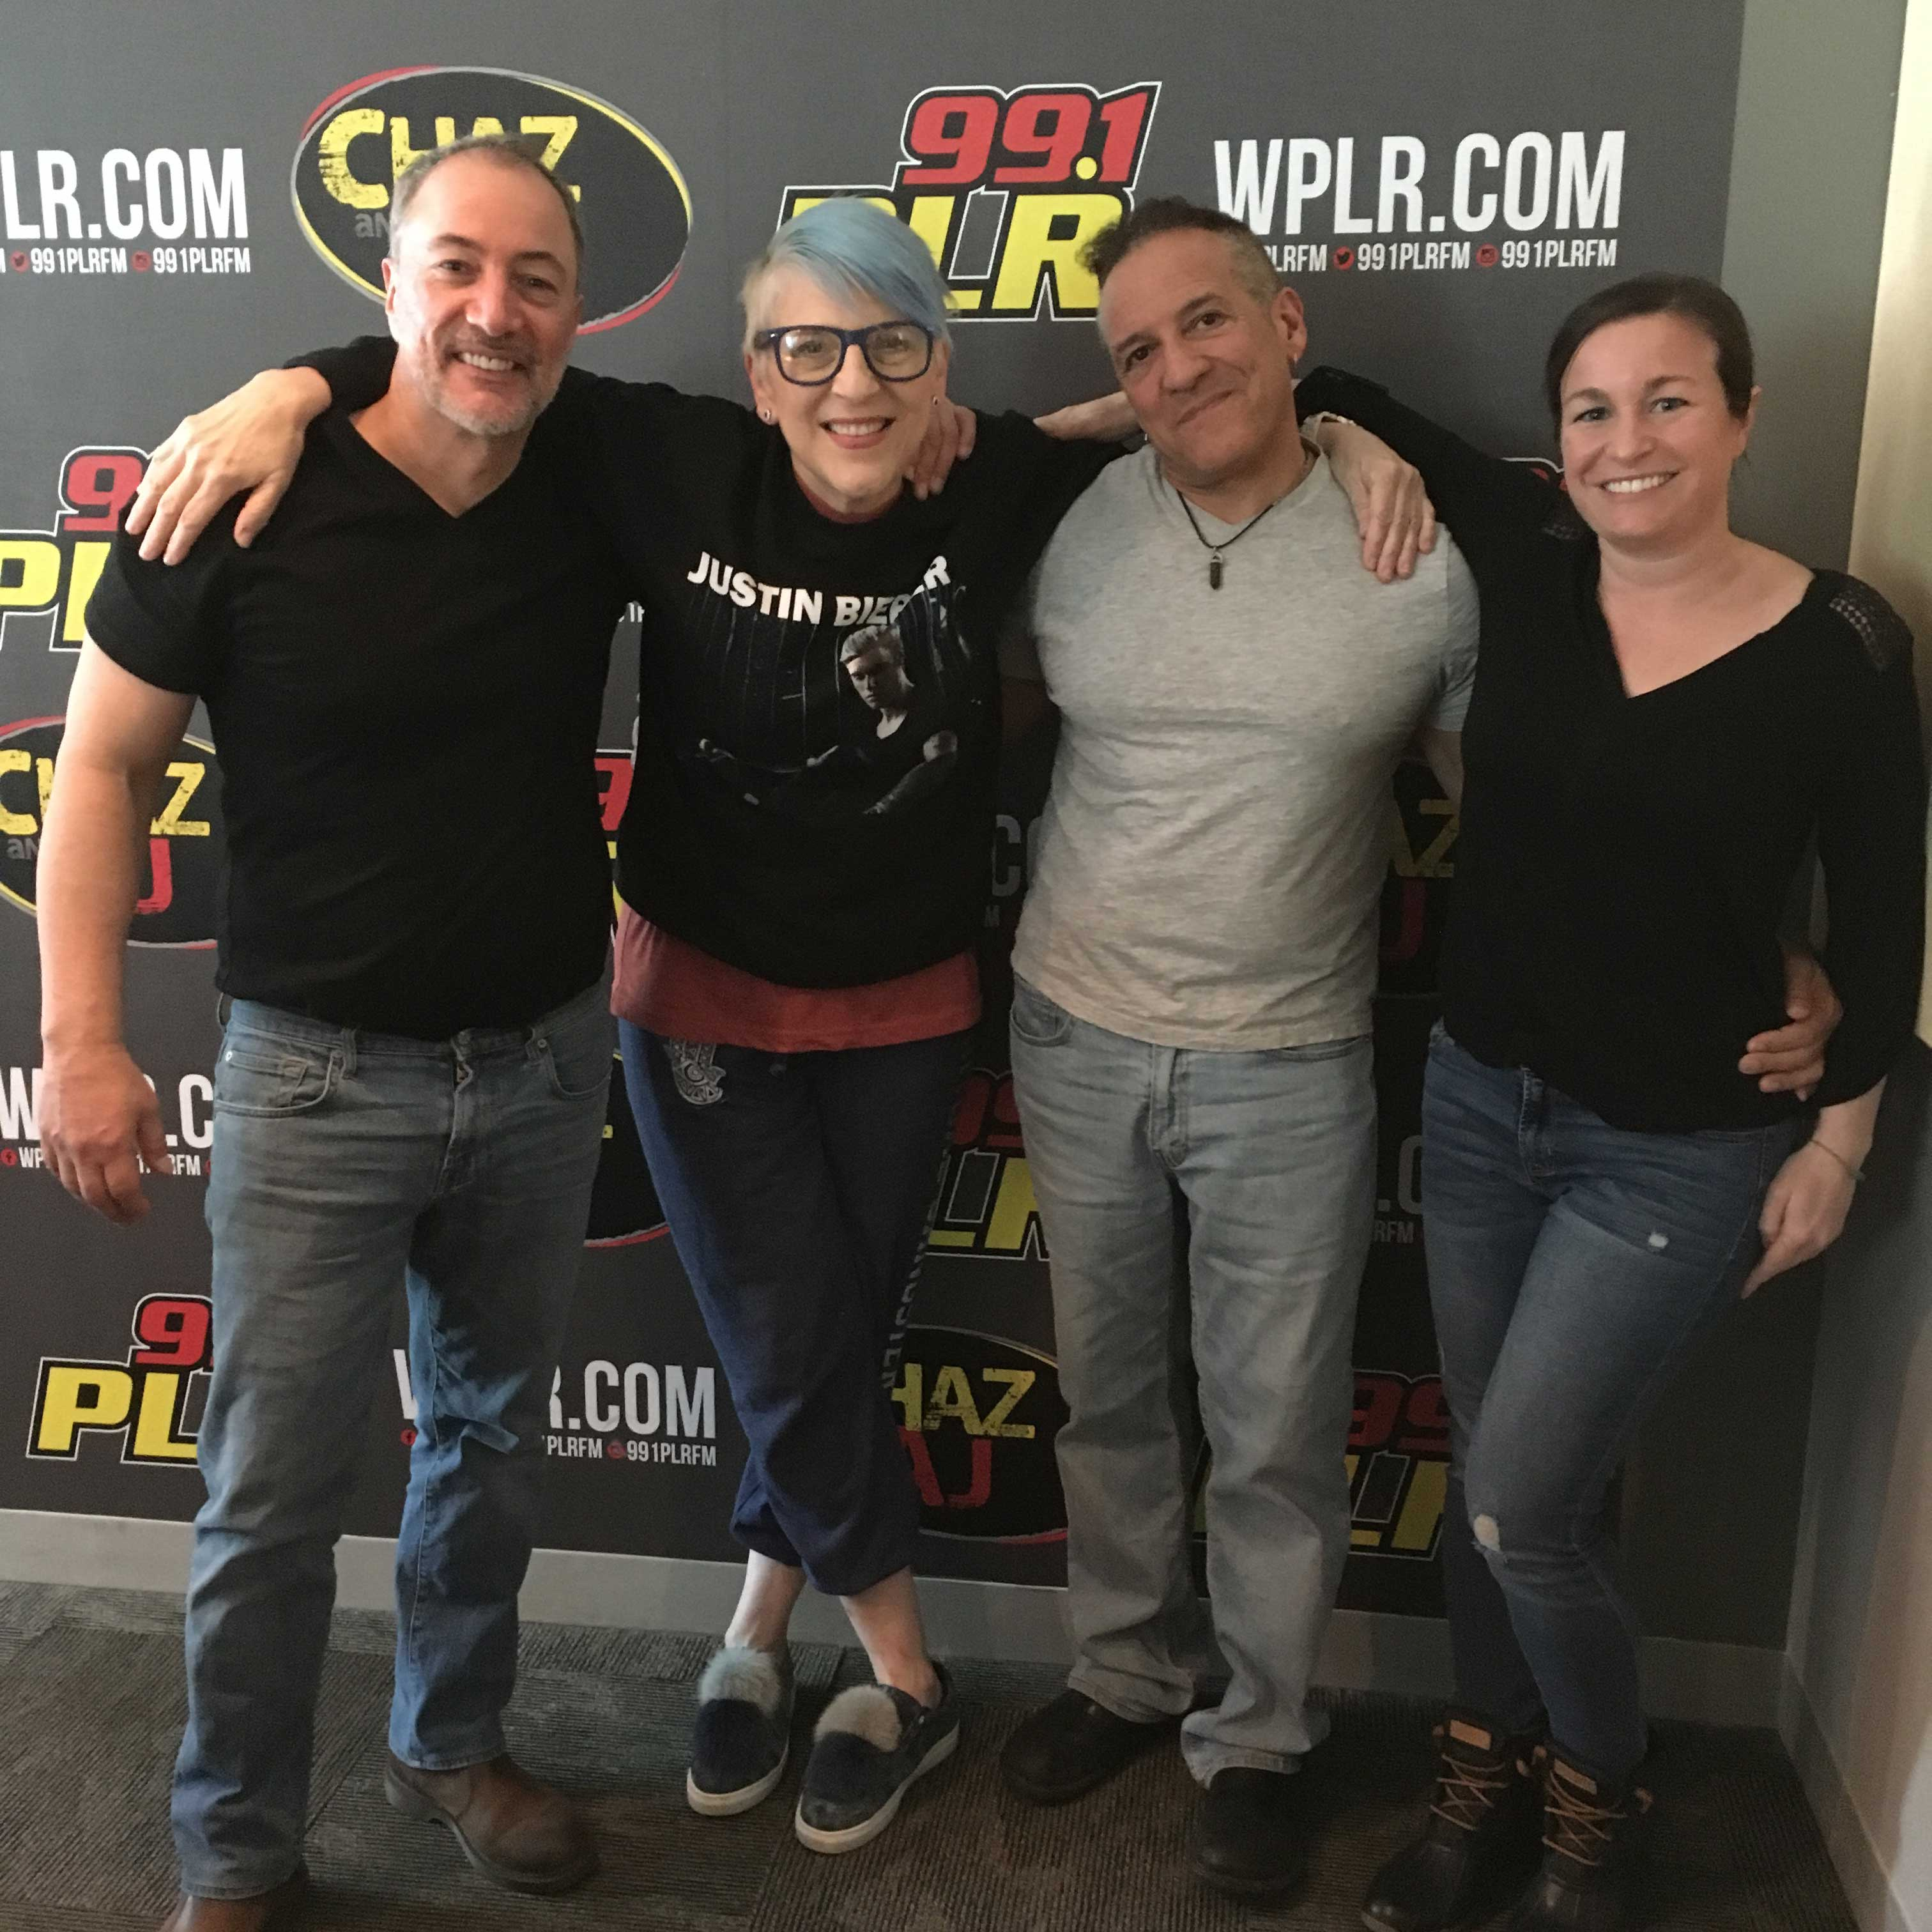 Wednesday, February 13: Celebrating 16 Years On PLR And Lisa Lampanelli Stops By